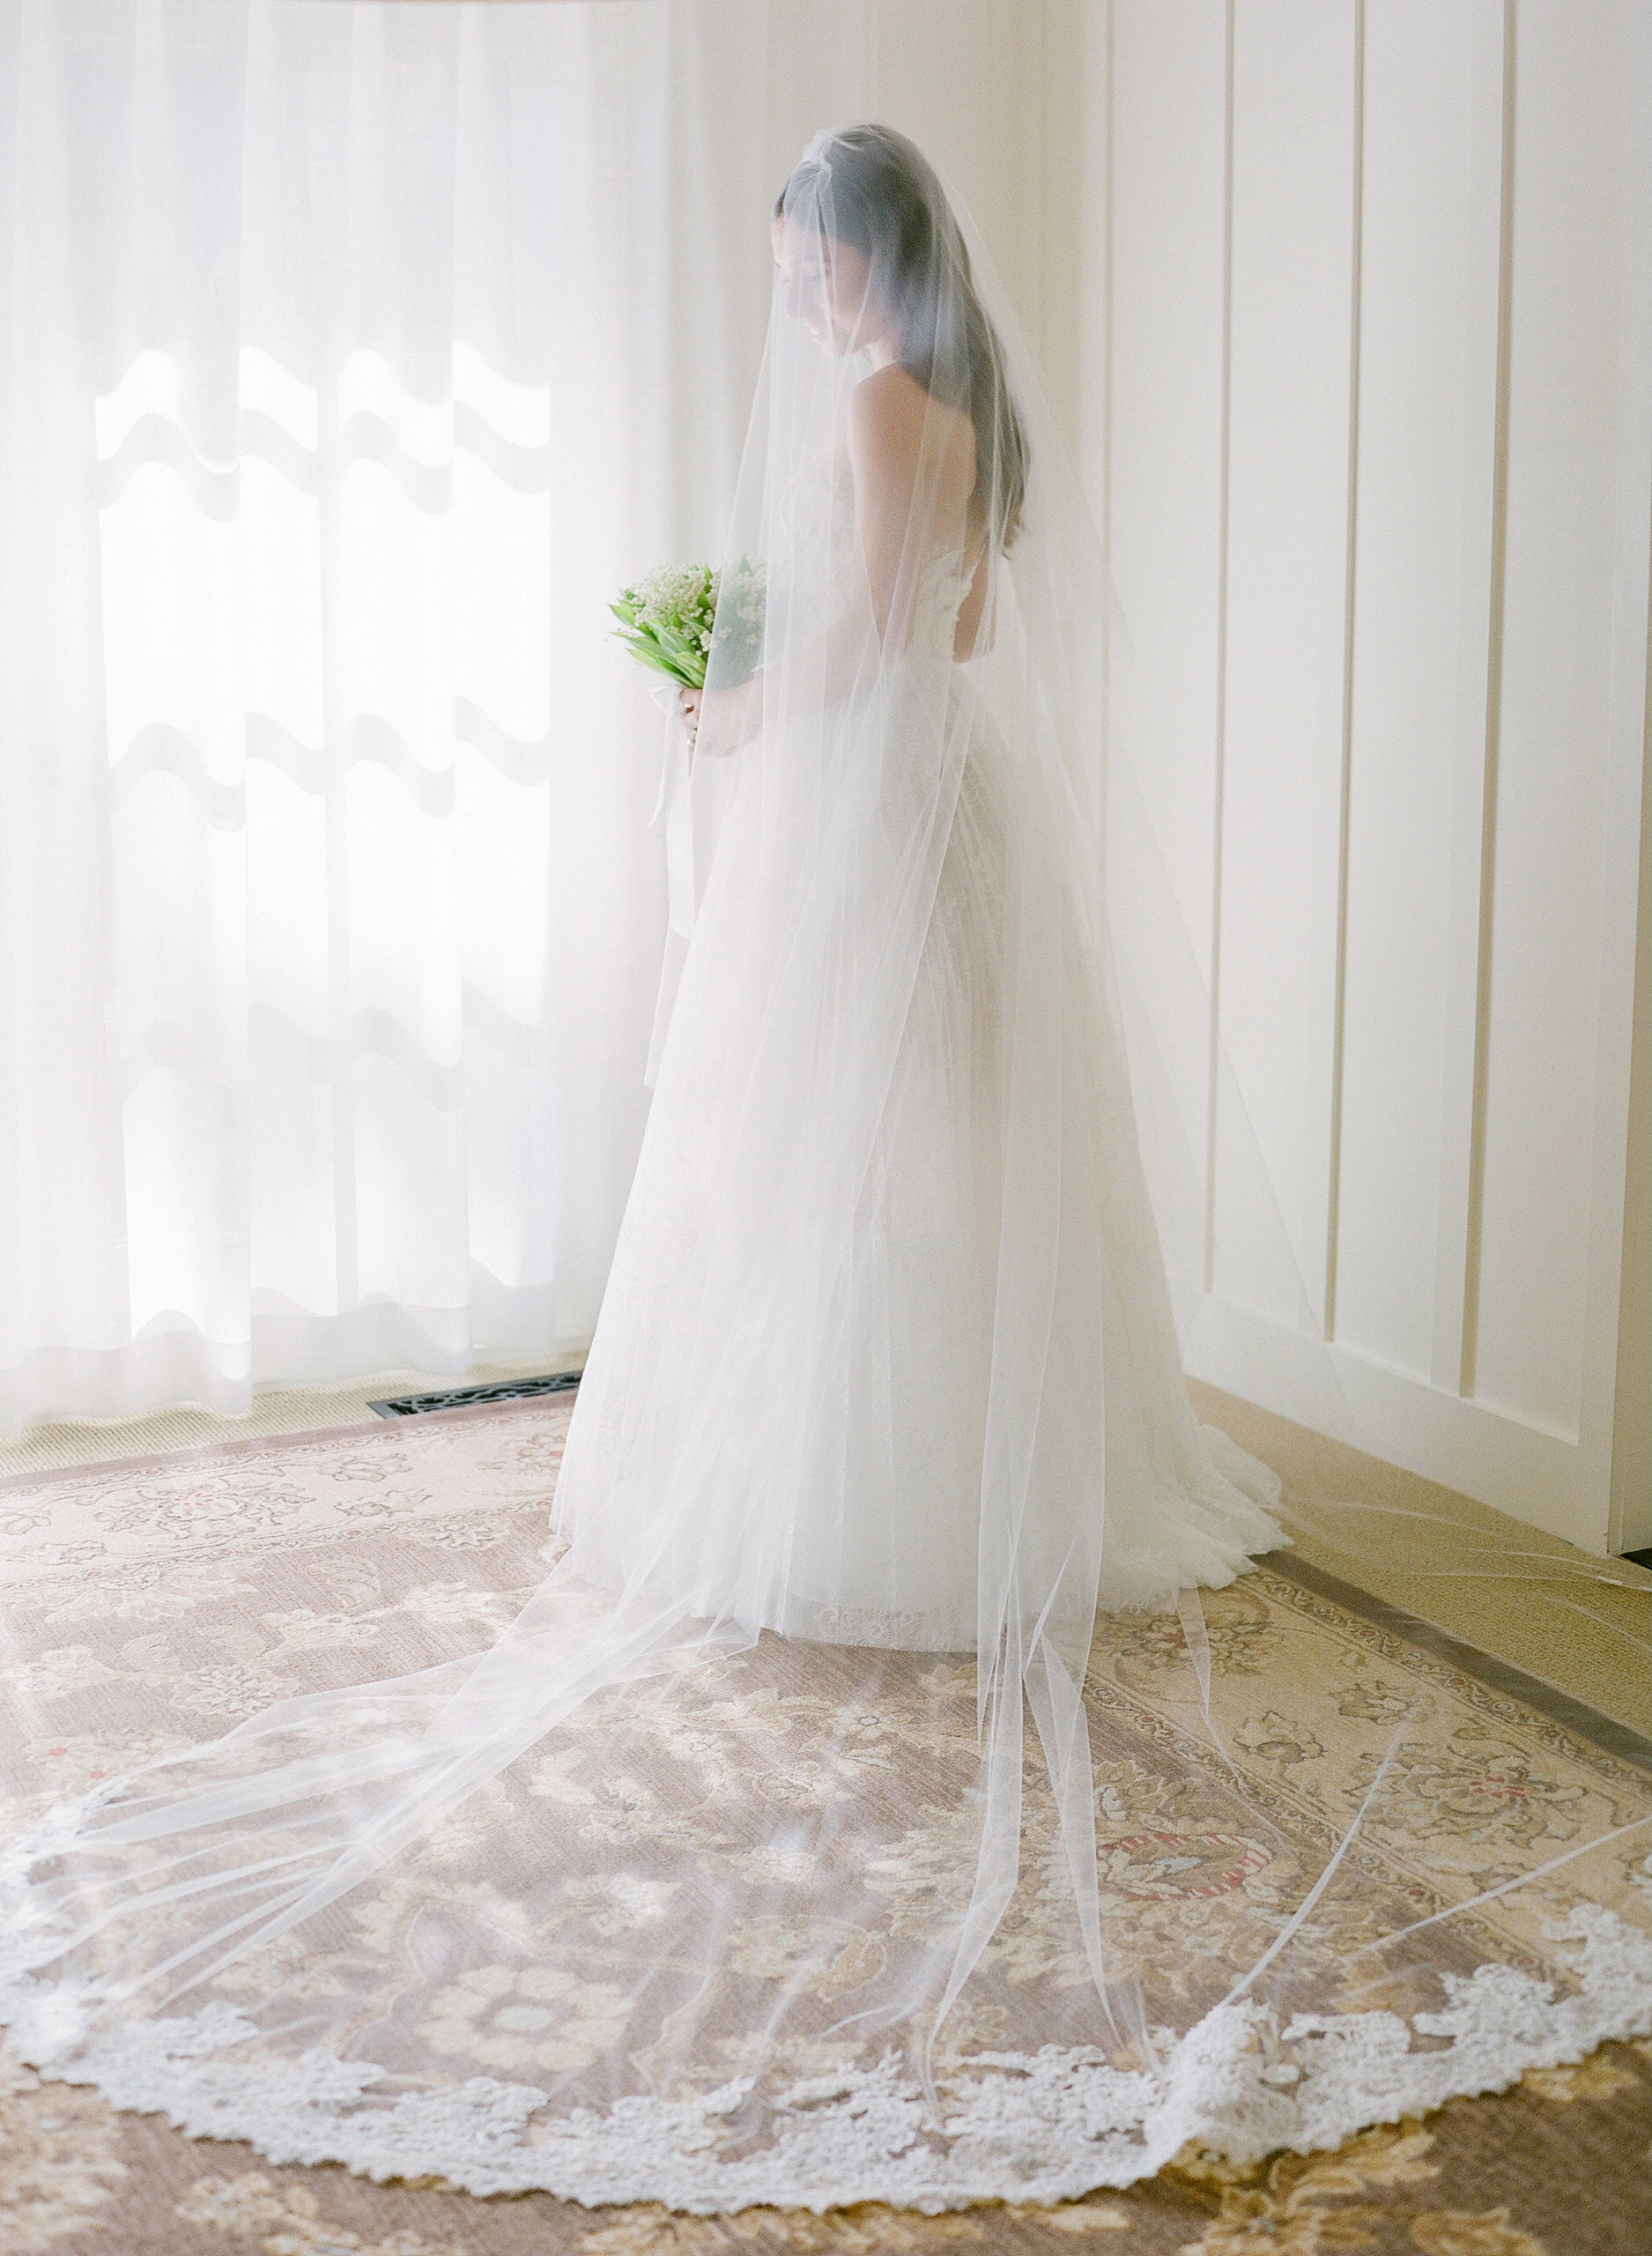 bride wedding dress applique flower tulle skirt